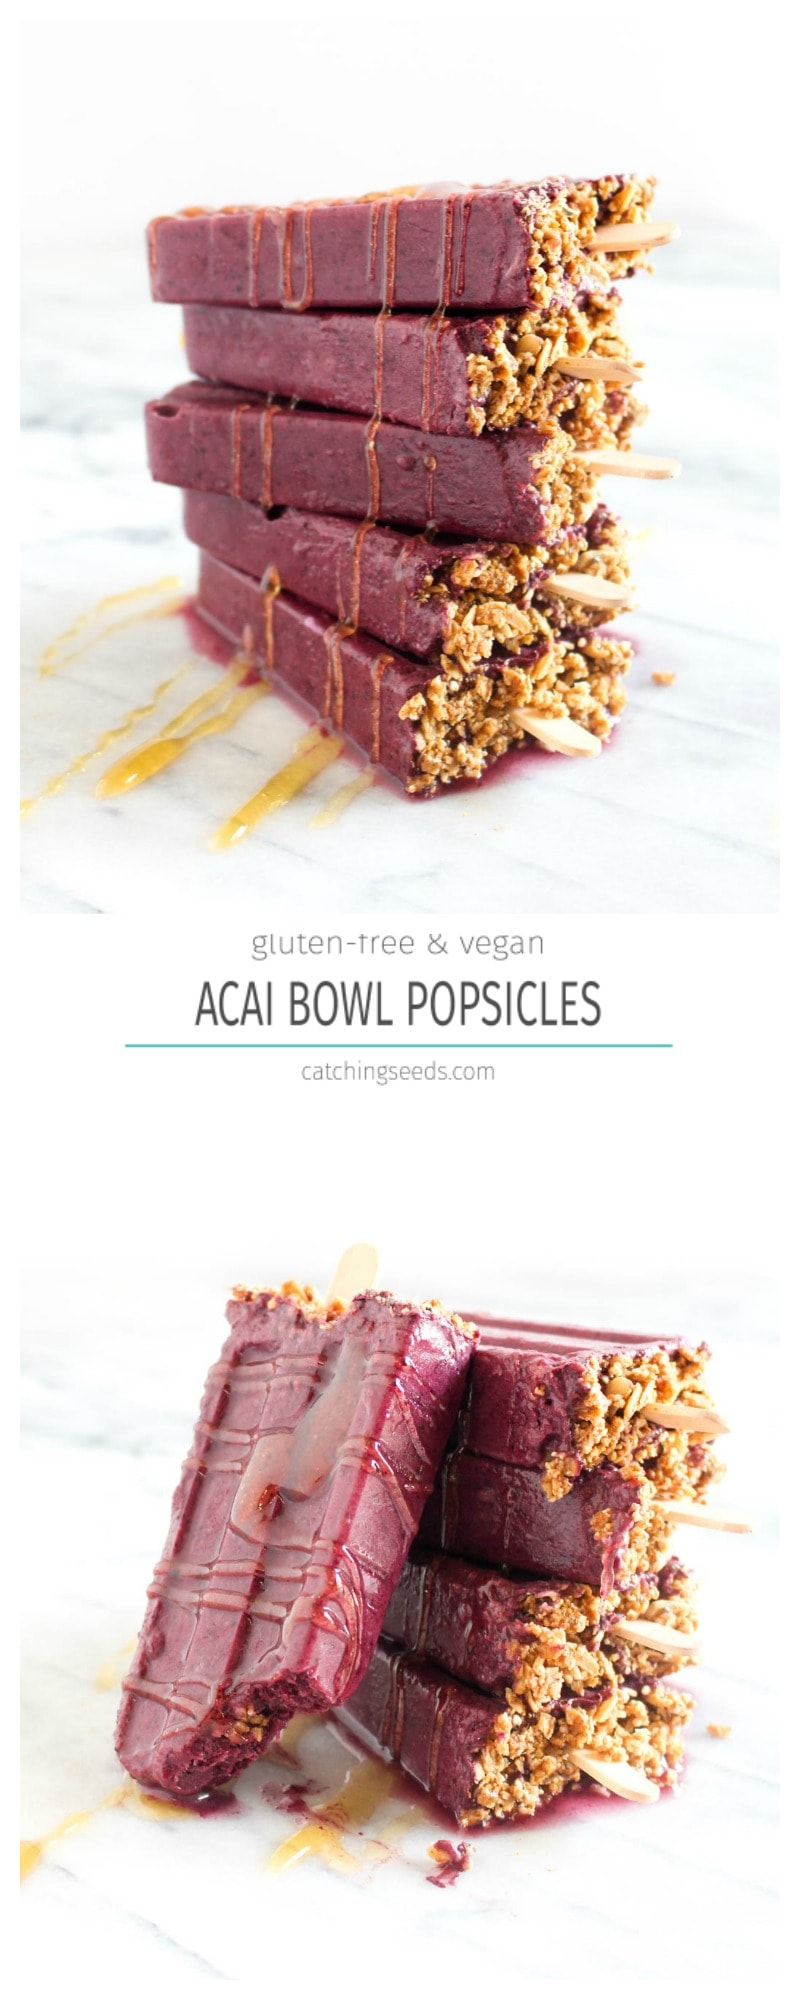 These Acai Bowl Popsicles are a 6 ingredient recipe that tastes like the tropics! Enjoy a healthy acai bowl anytime without having to clean the blender. | CatchingSeeds.com